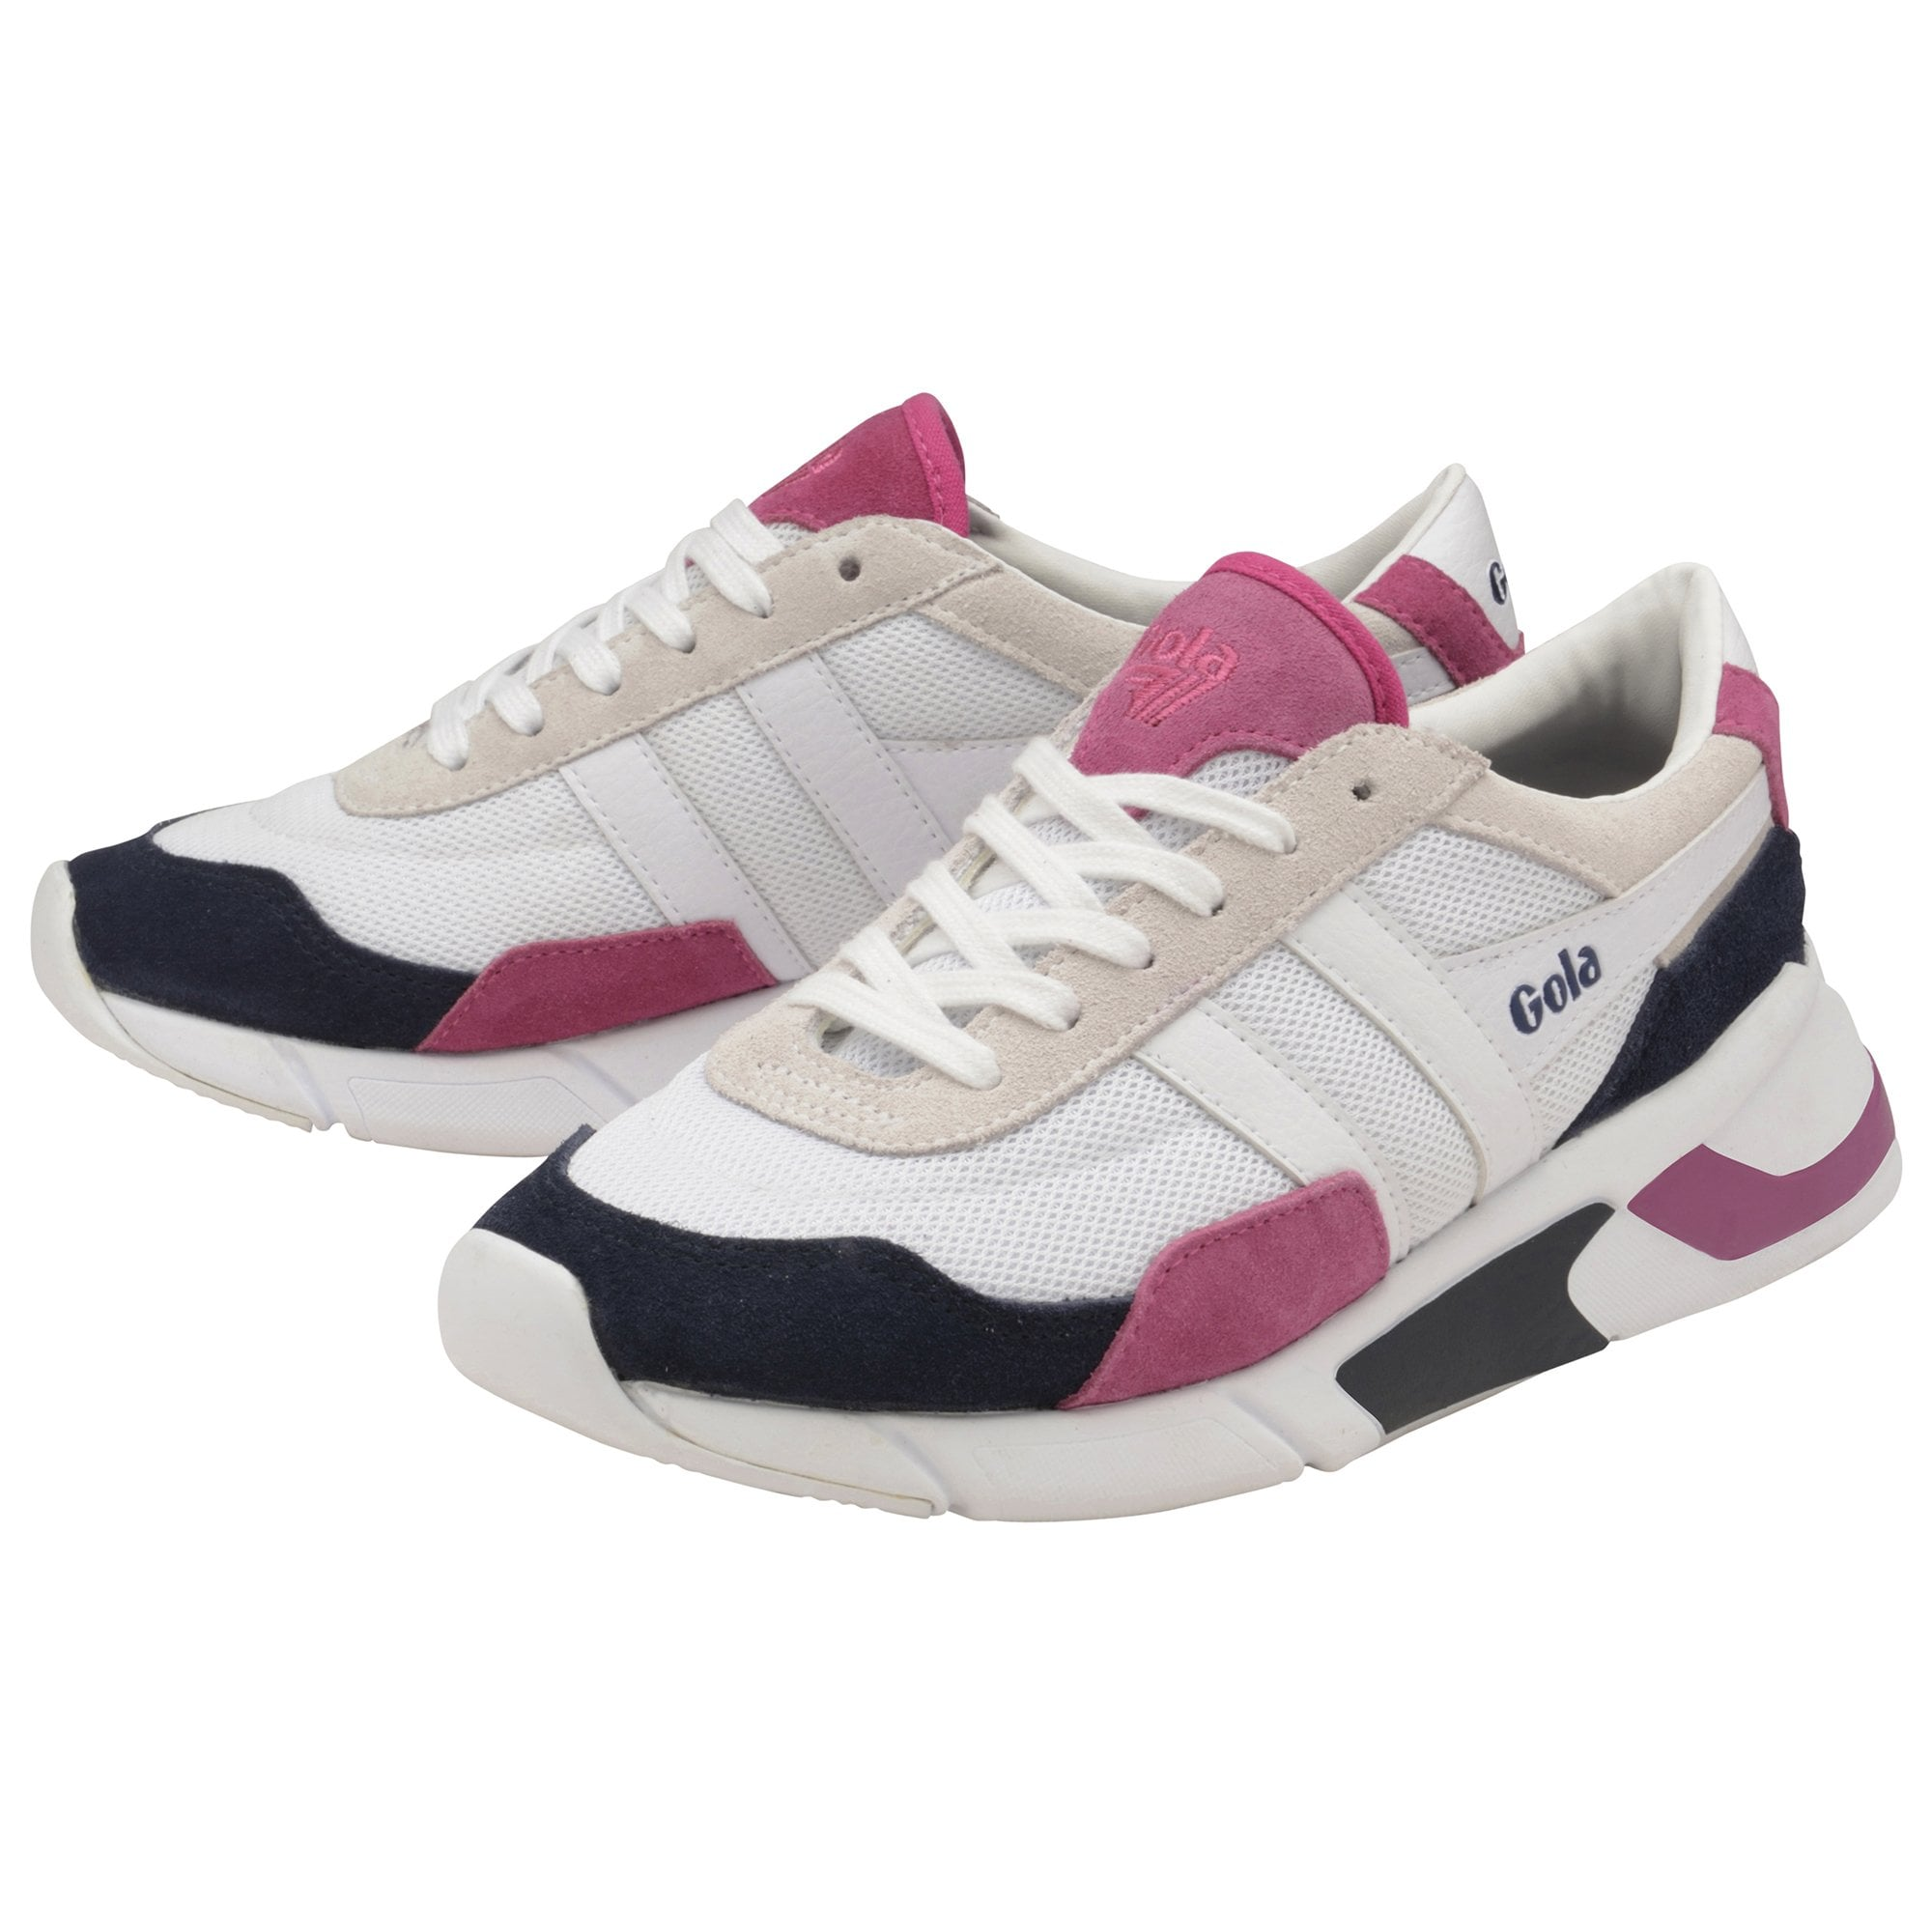 Women's Eclipse Sneakers